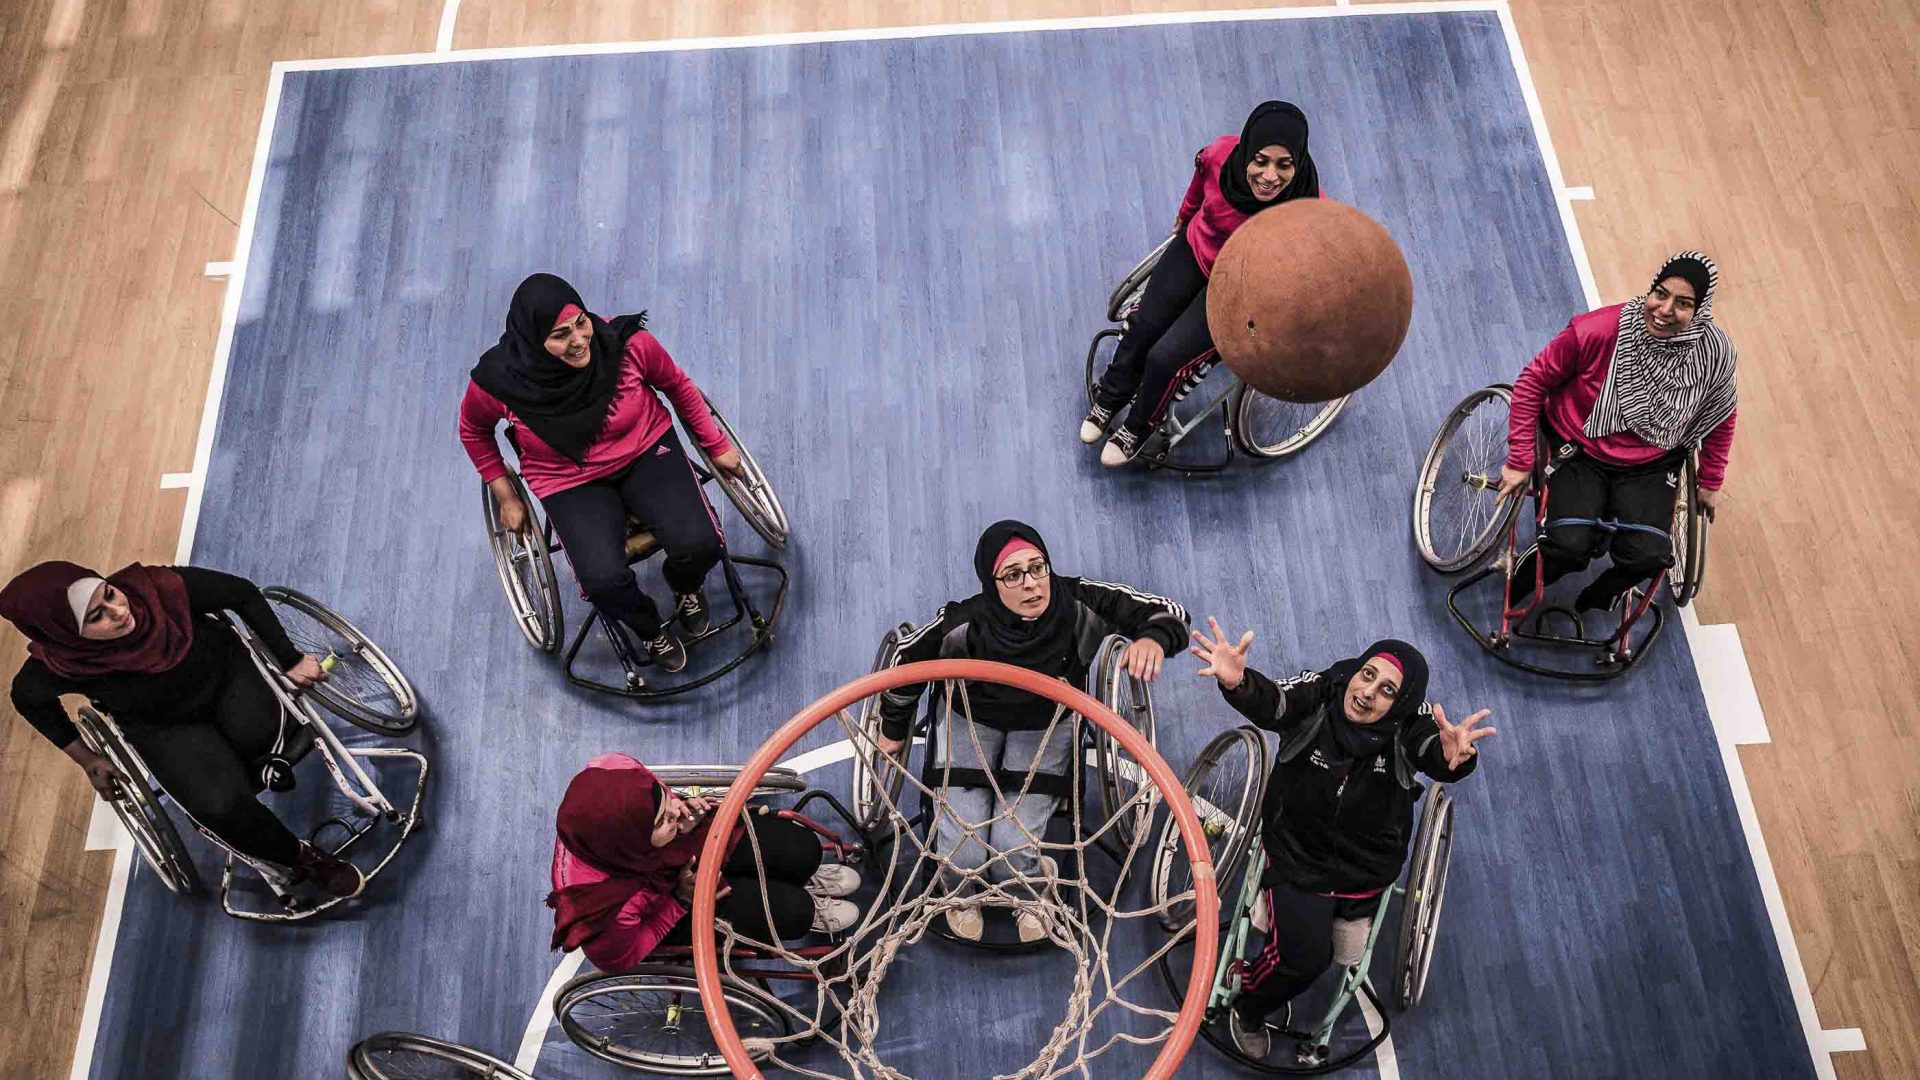 Players from the women's wheelchair basketball team.